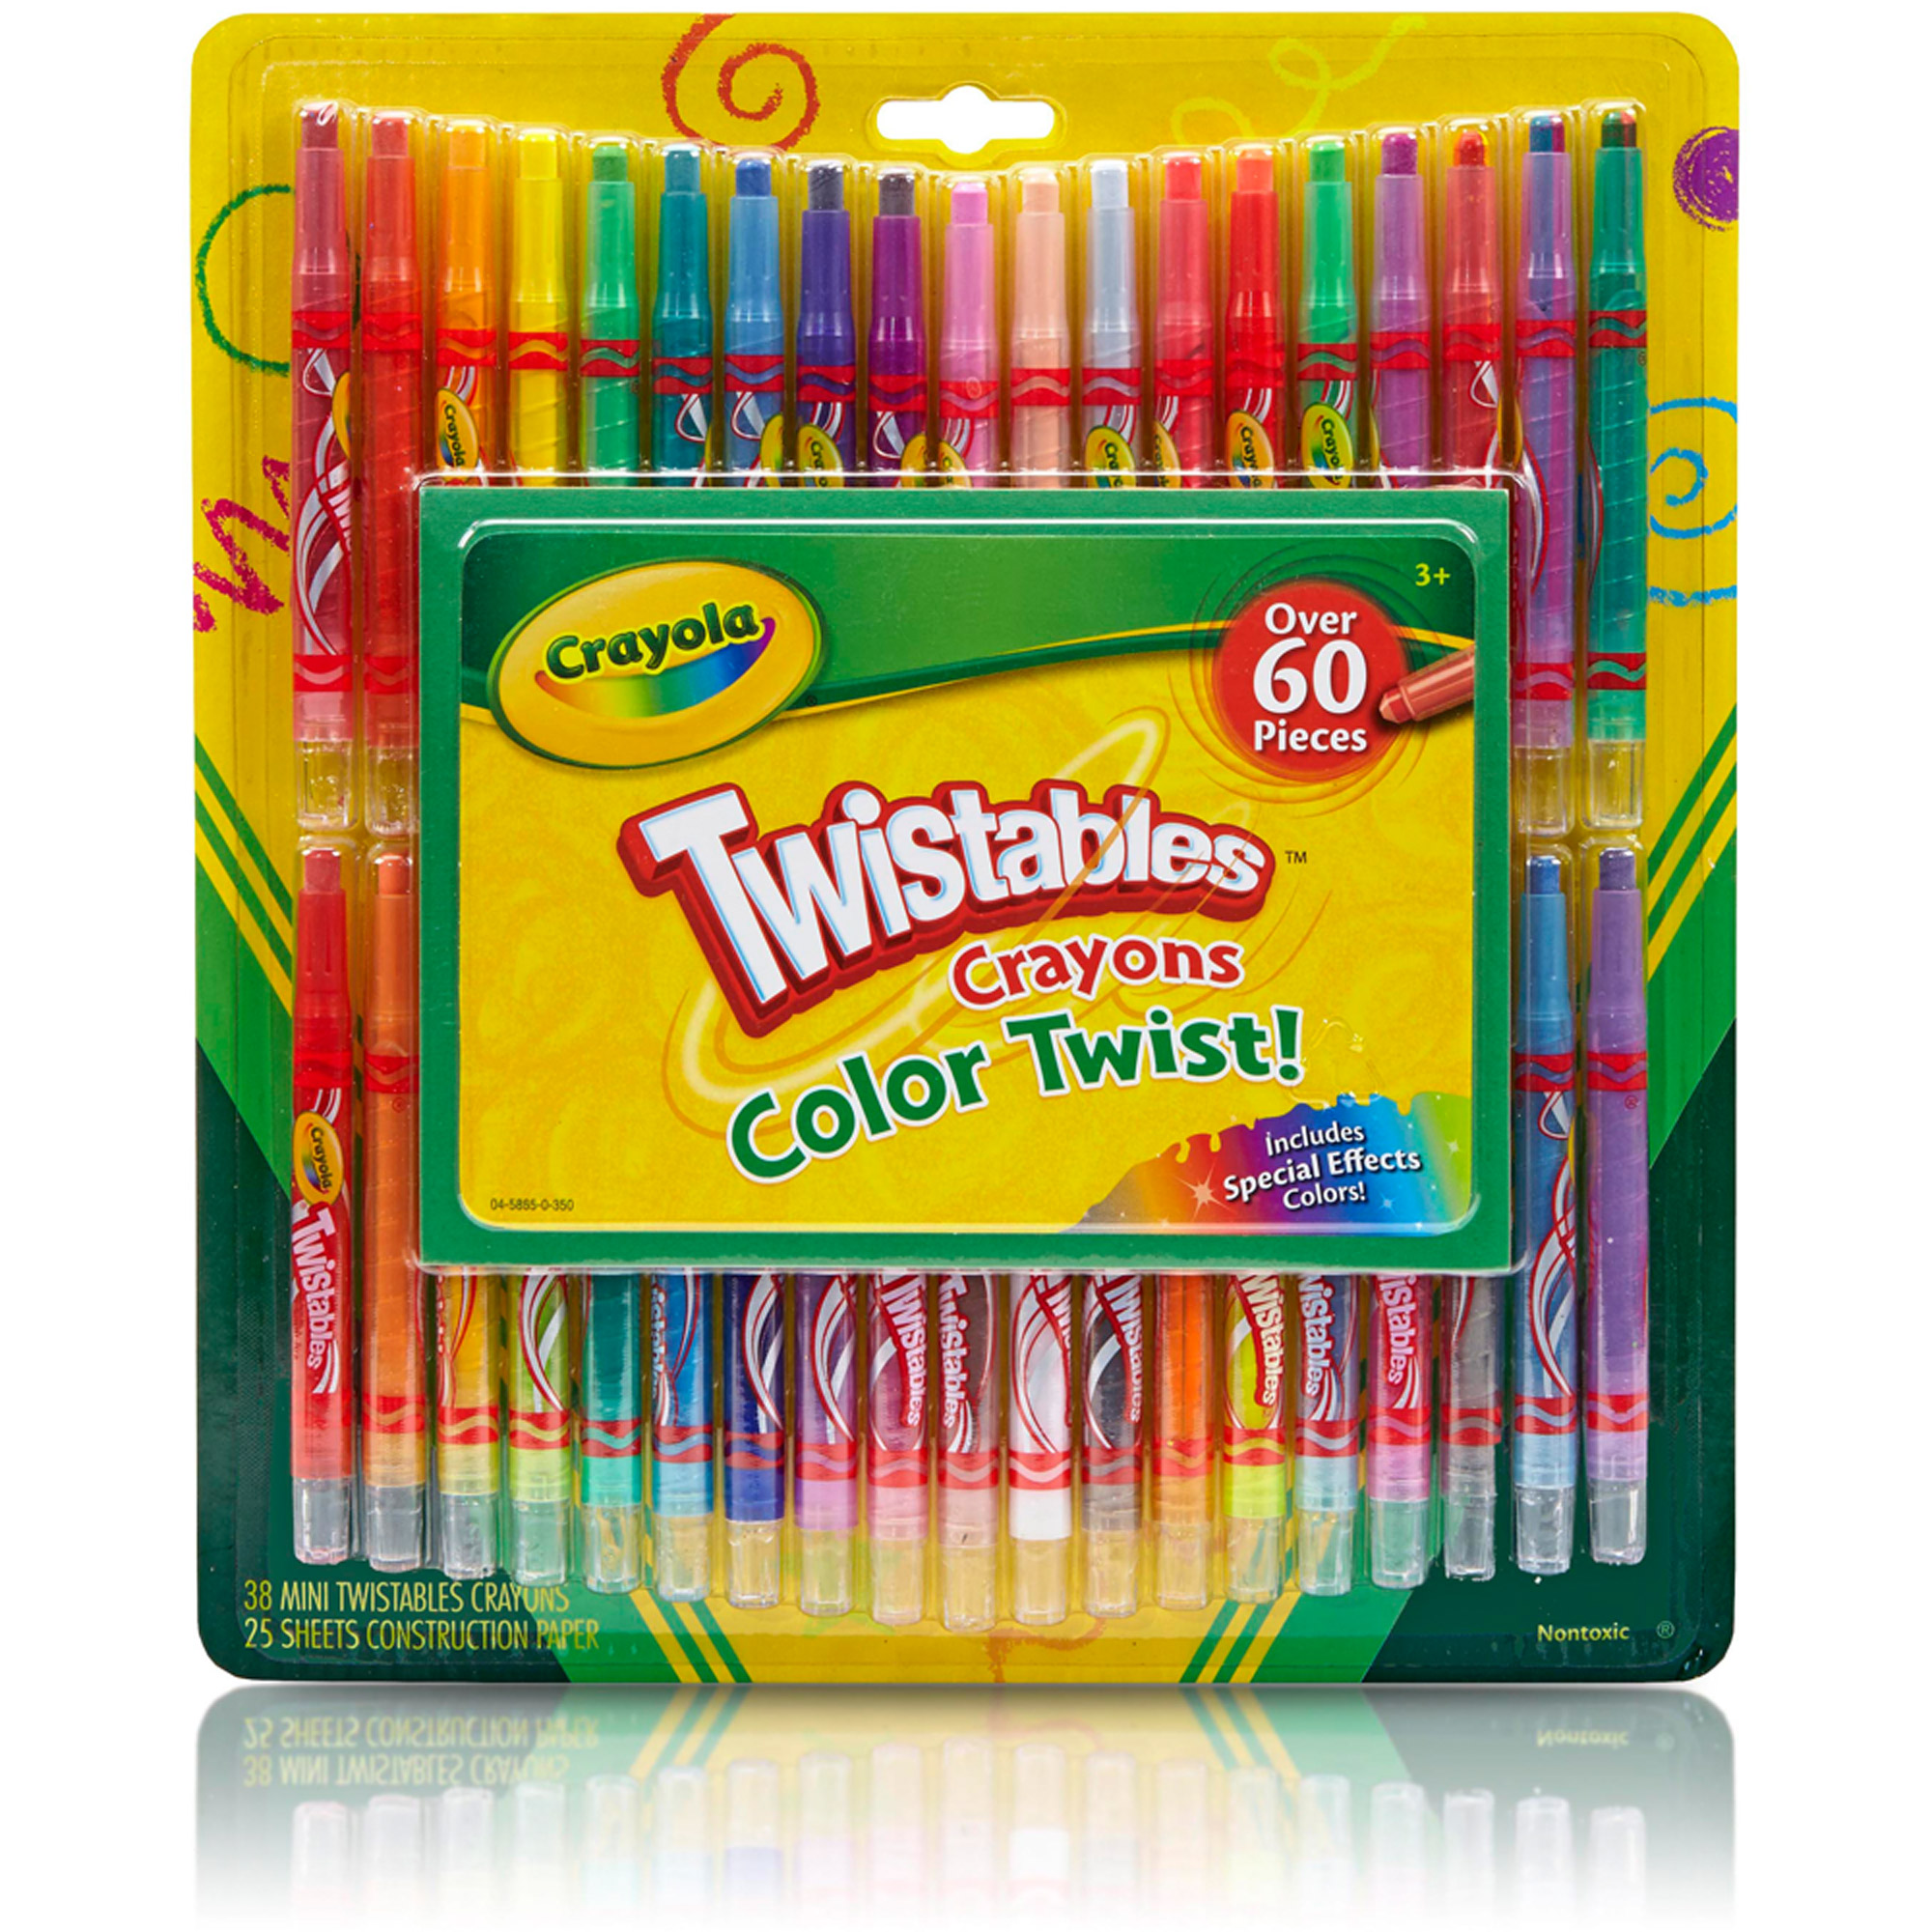 Crayola 04-5865 Twistable Crayons & Paper Toy (60 Piece)  (Open Box)